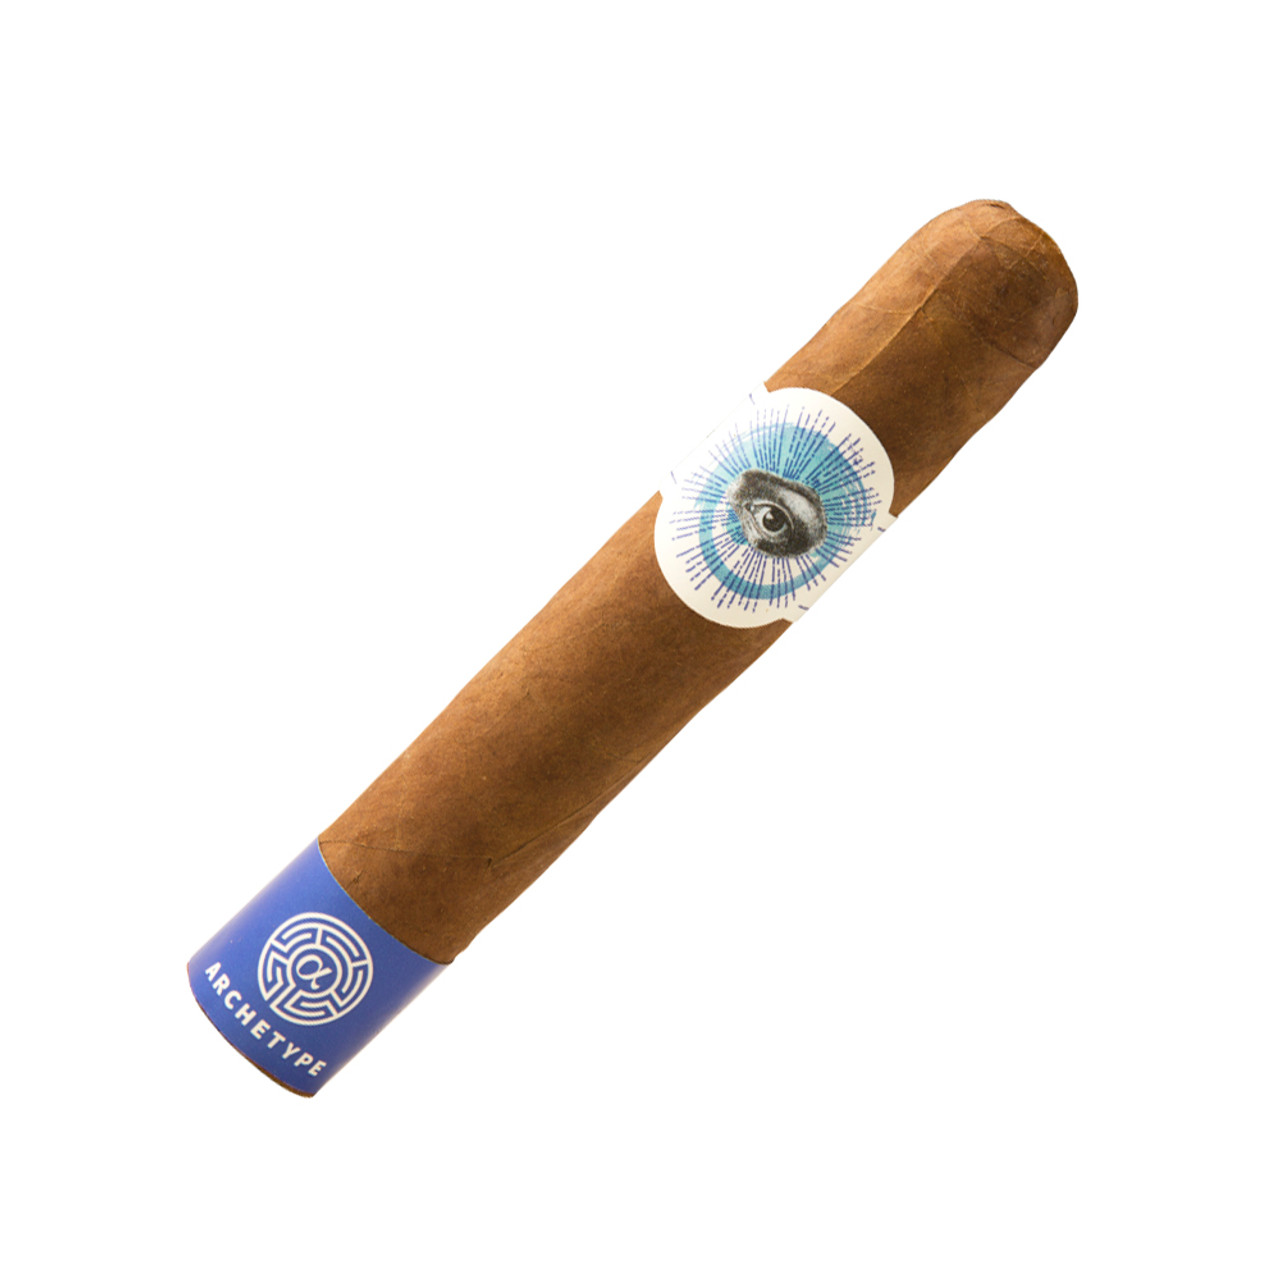 Archetype Sage Advice Robusto Cigars - 6 x 52 (Box of 20)